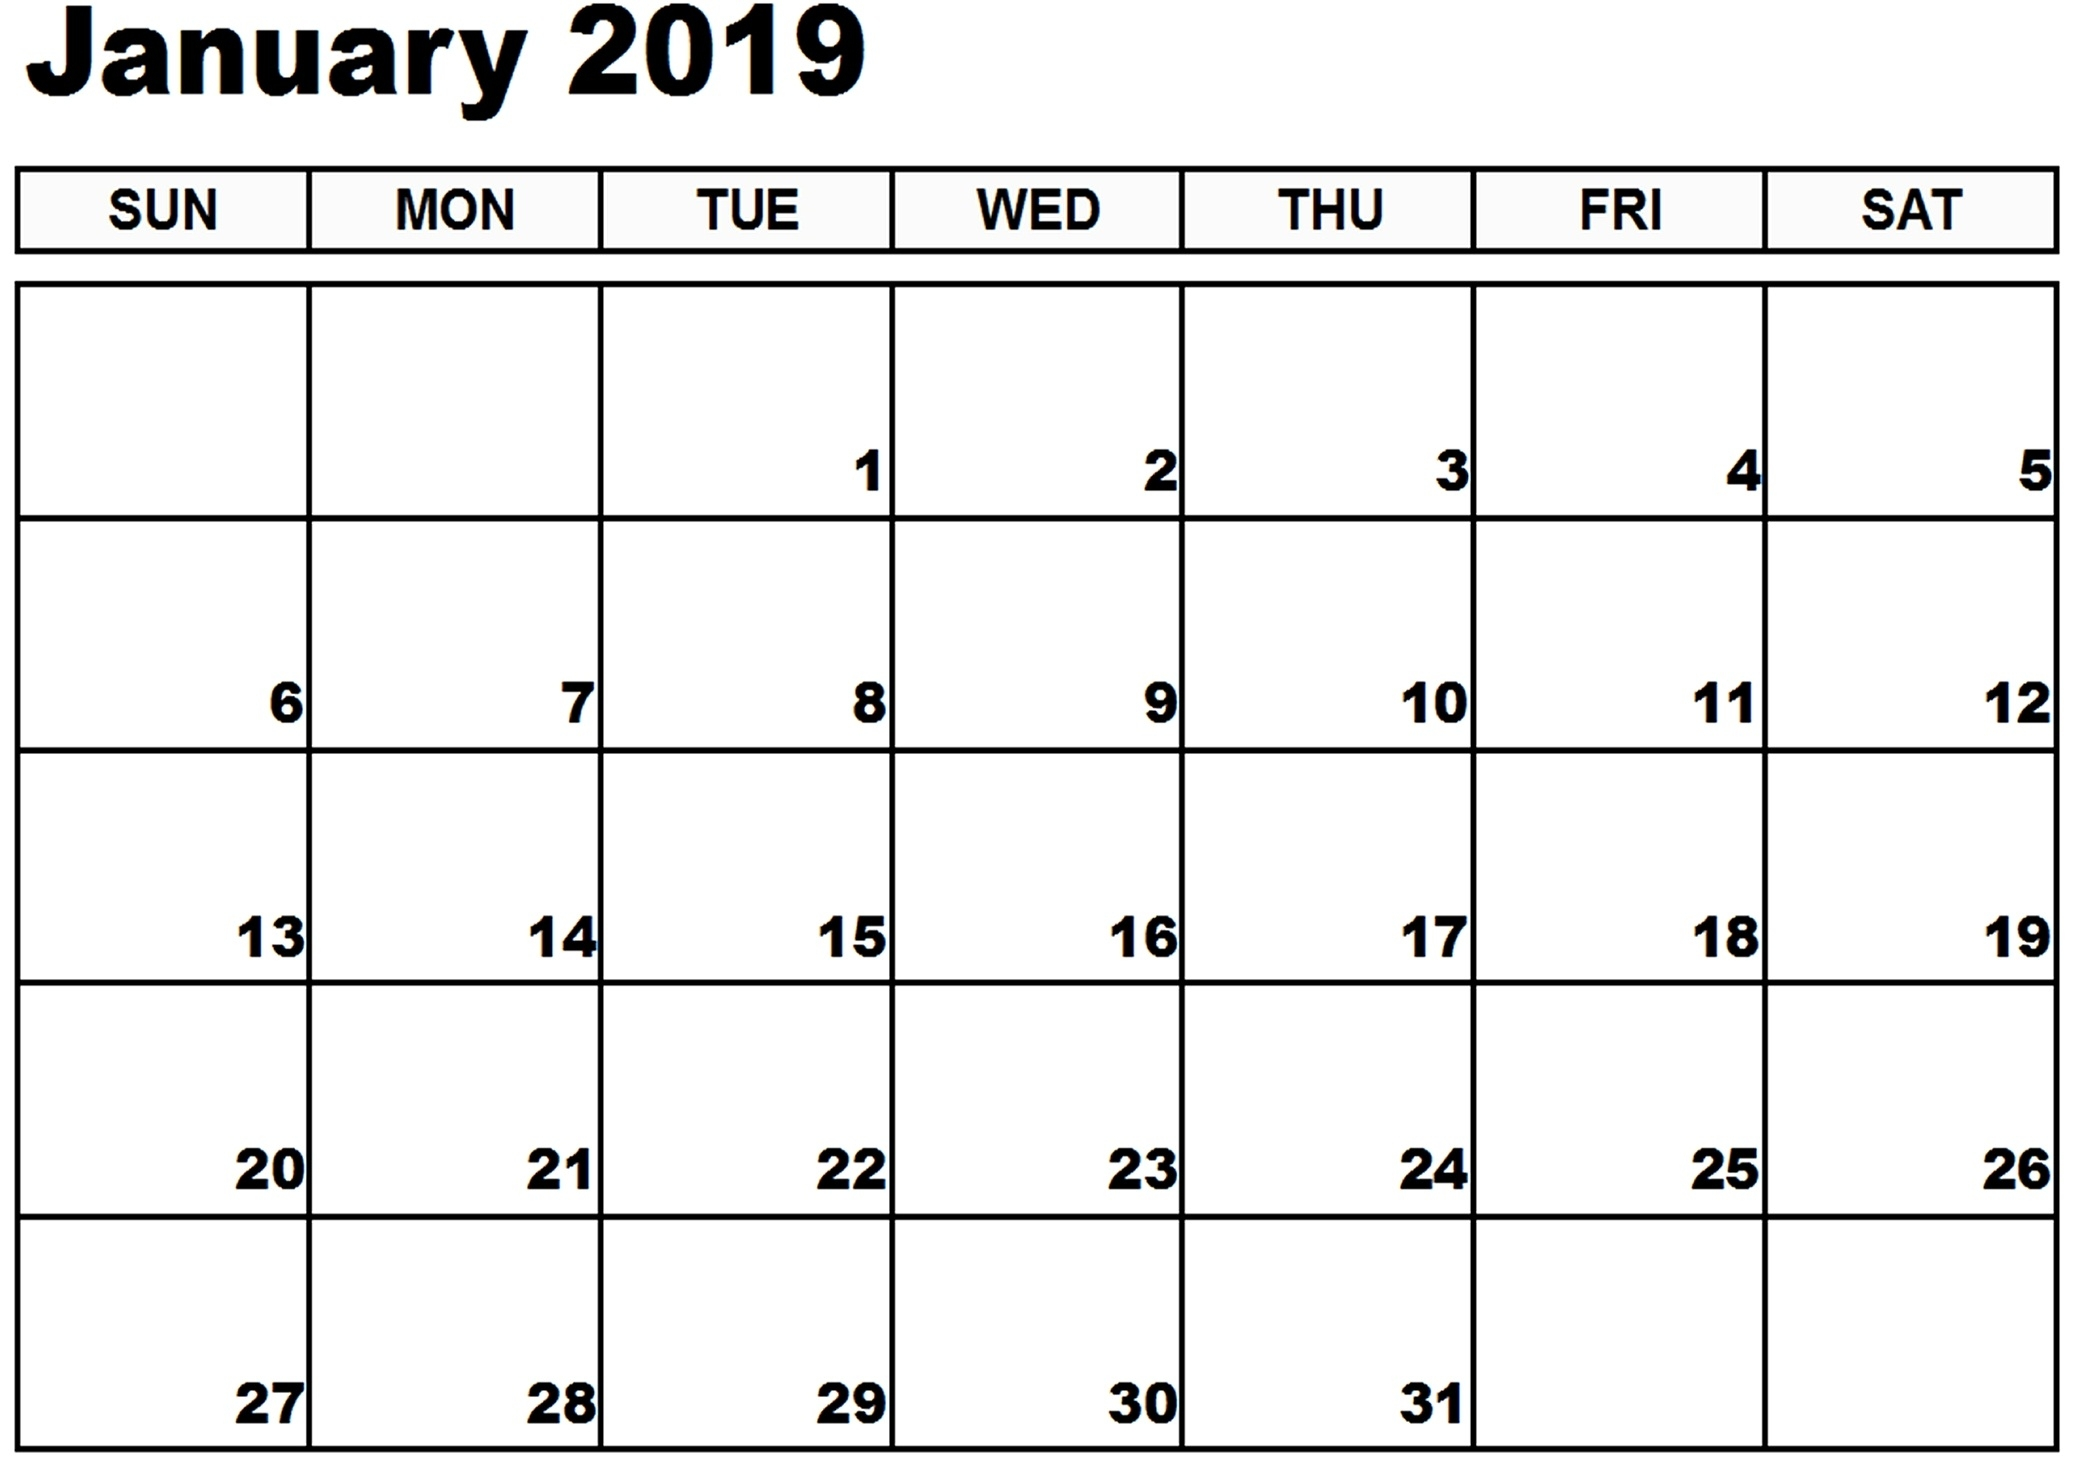 calendar january 2019 word printable printable::January 2019 Calendar Word